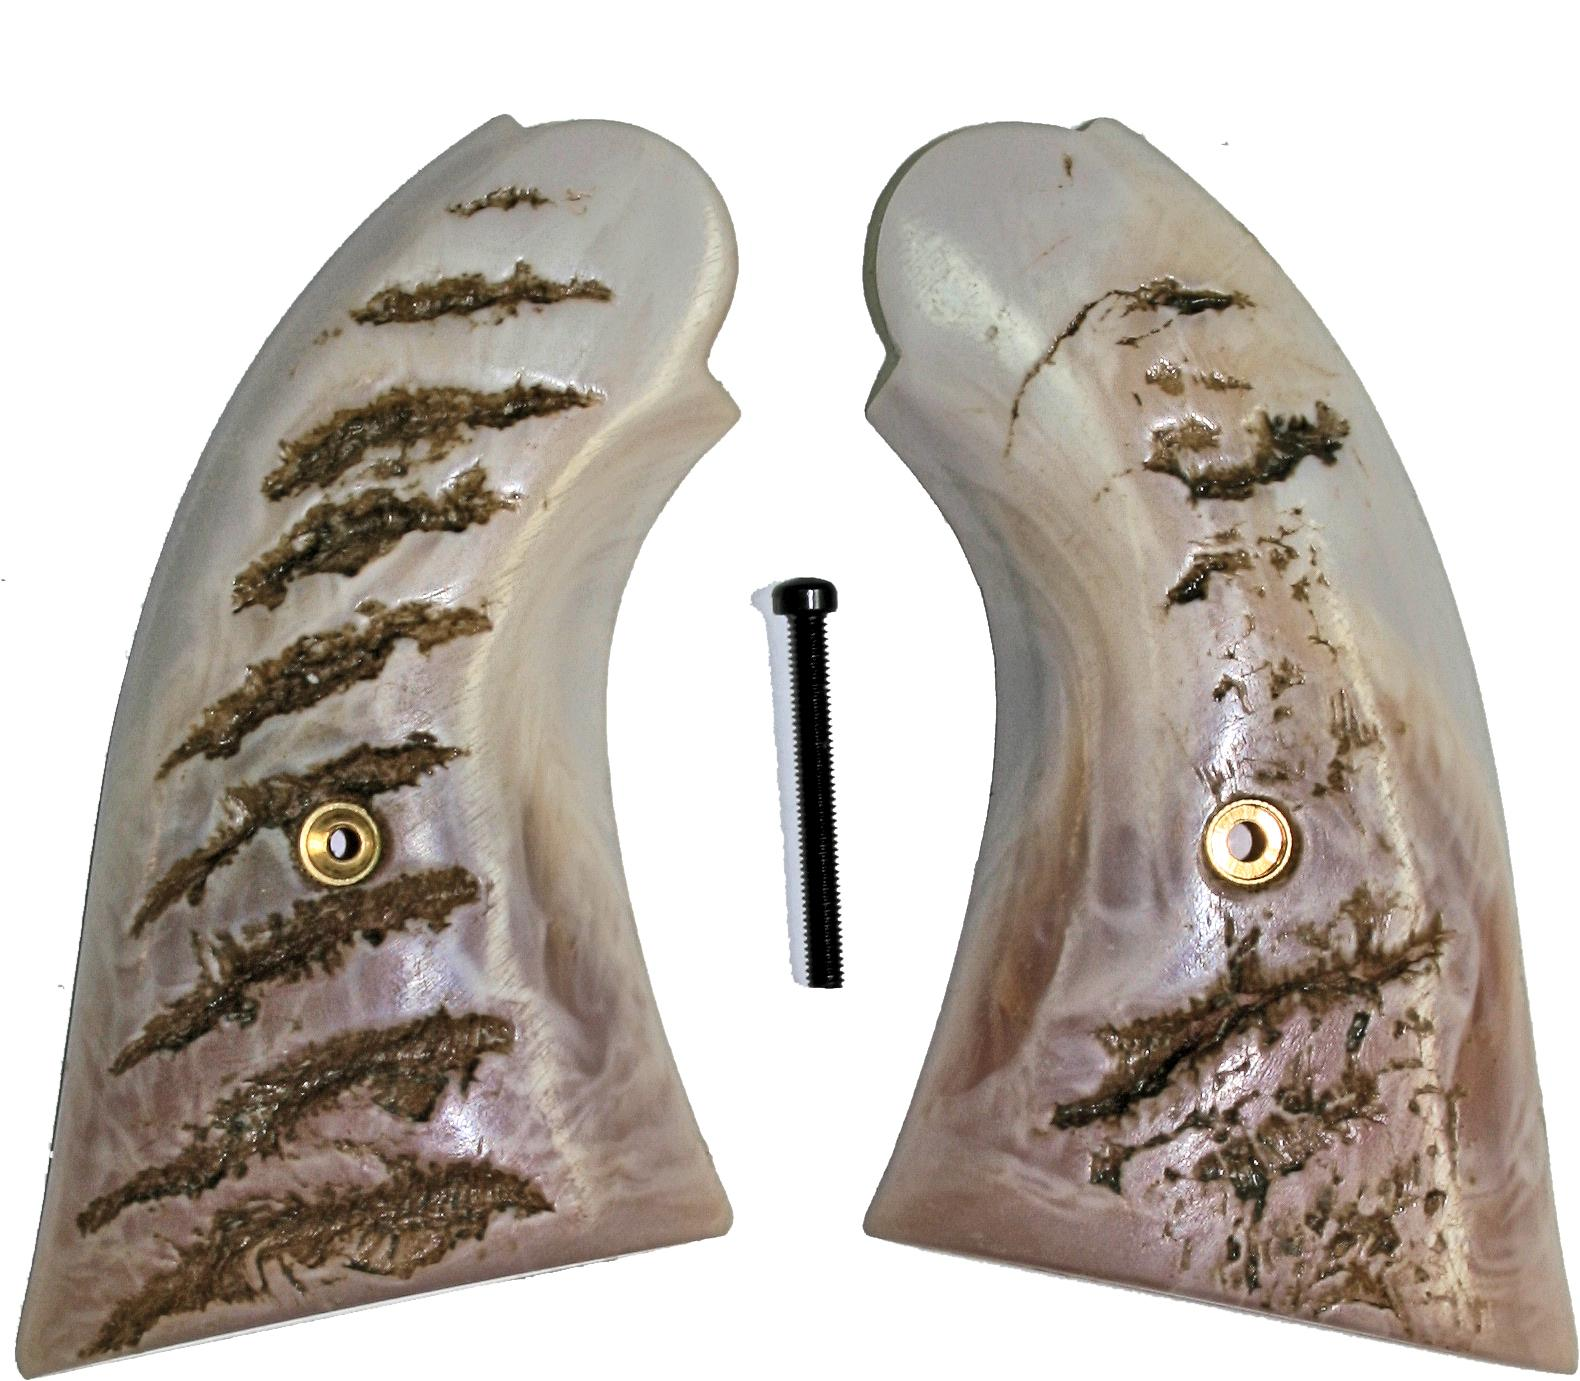 Stag Horn Grips Pietta 1858 Related Keywords & Suggestions - Stag